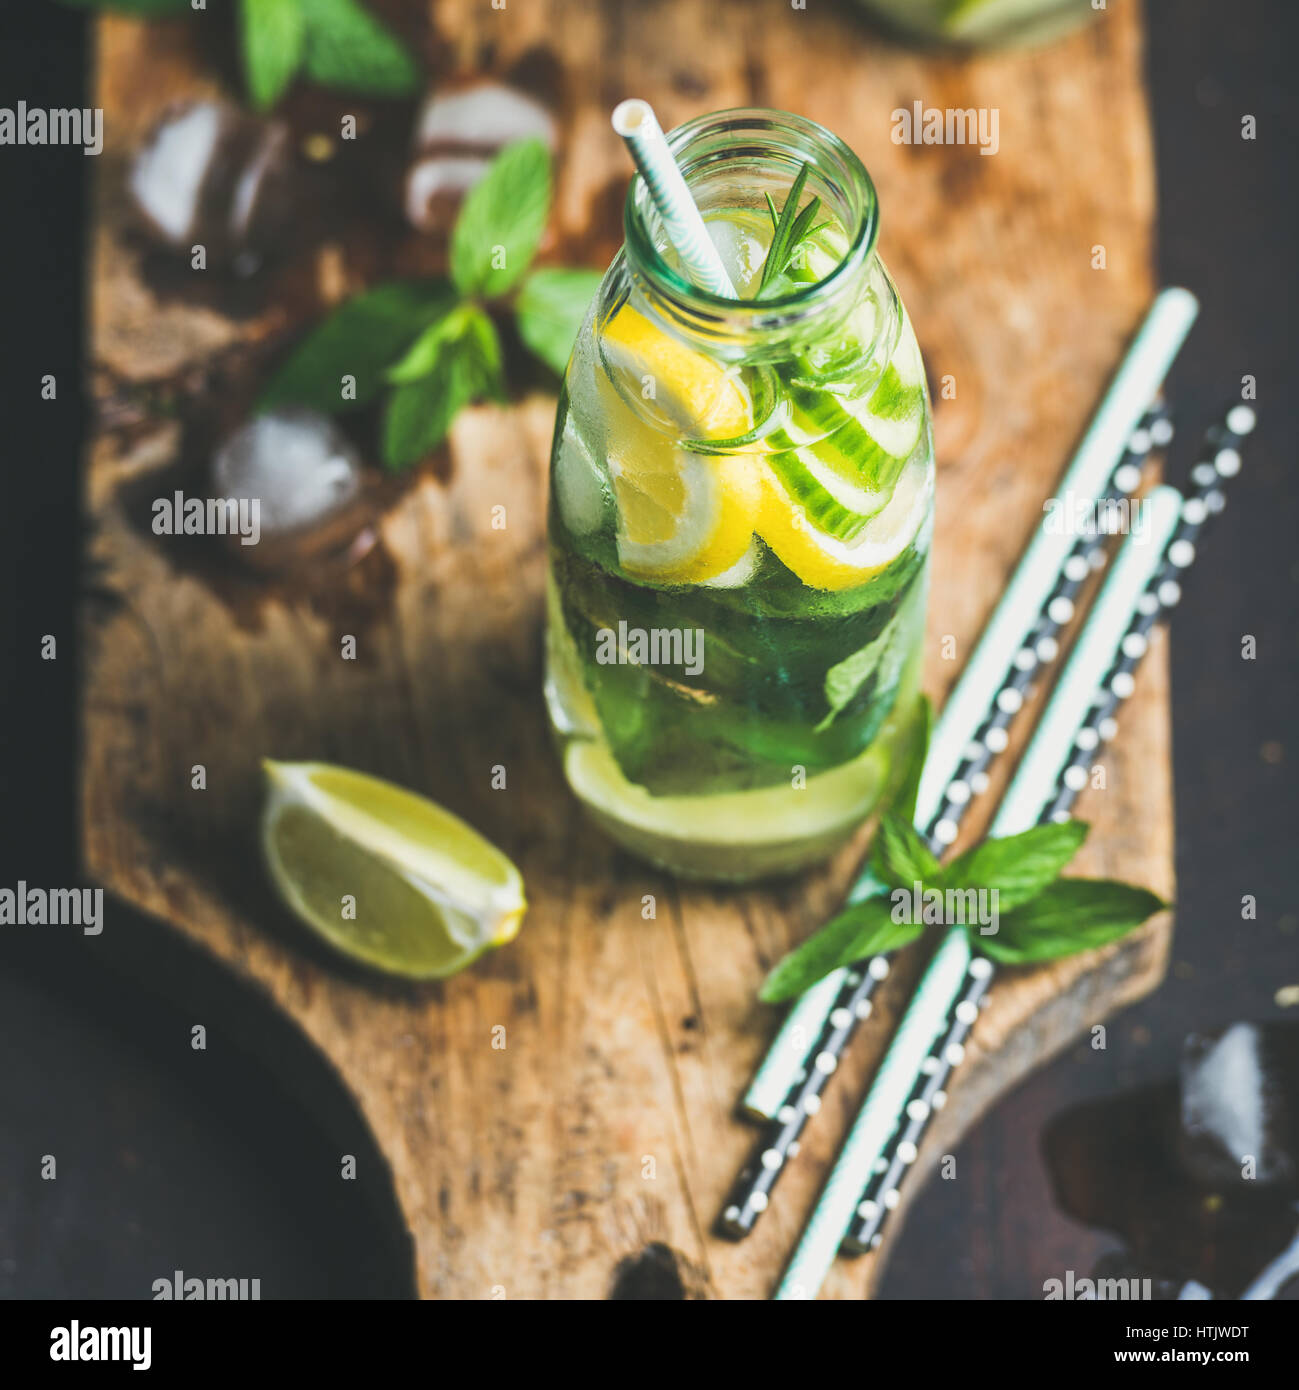 Clean eating healthy citrus sassi water in glass bottle - Stock Image